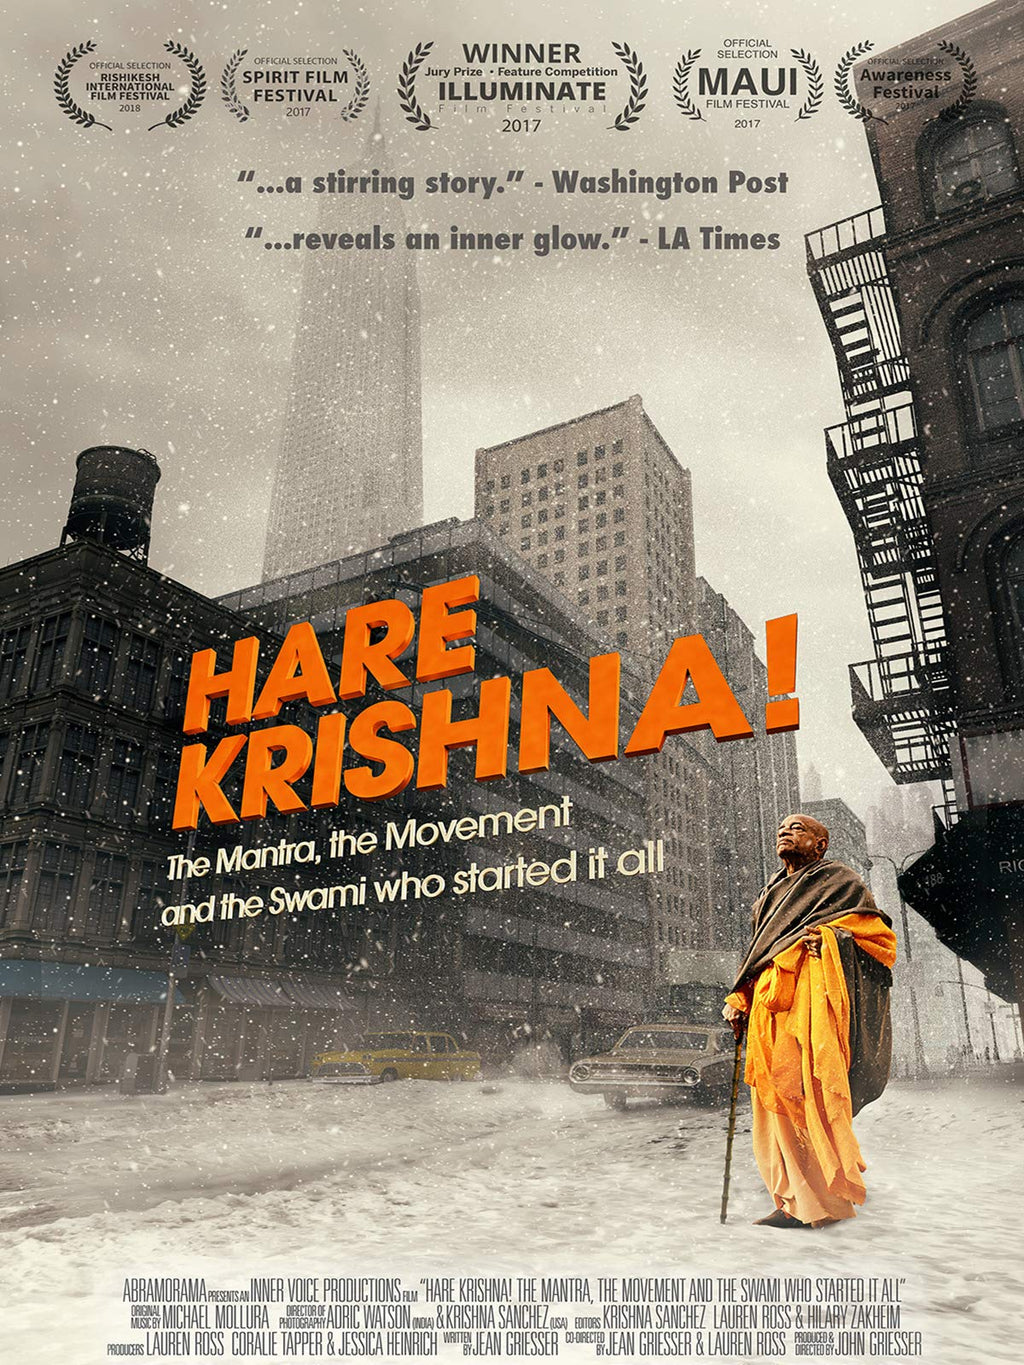 'HARE KRISHNA!: The Mantra, the Movement and the Swami who started it all' Documentary Film - DVD